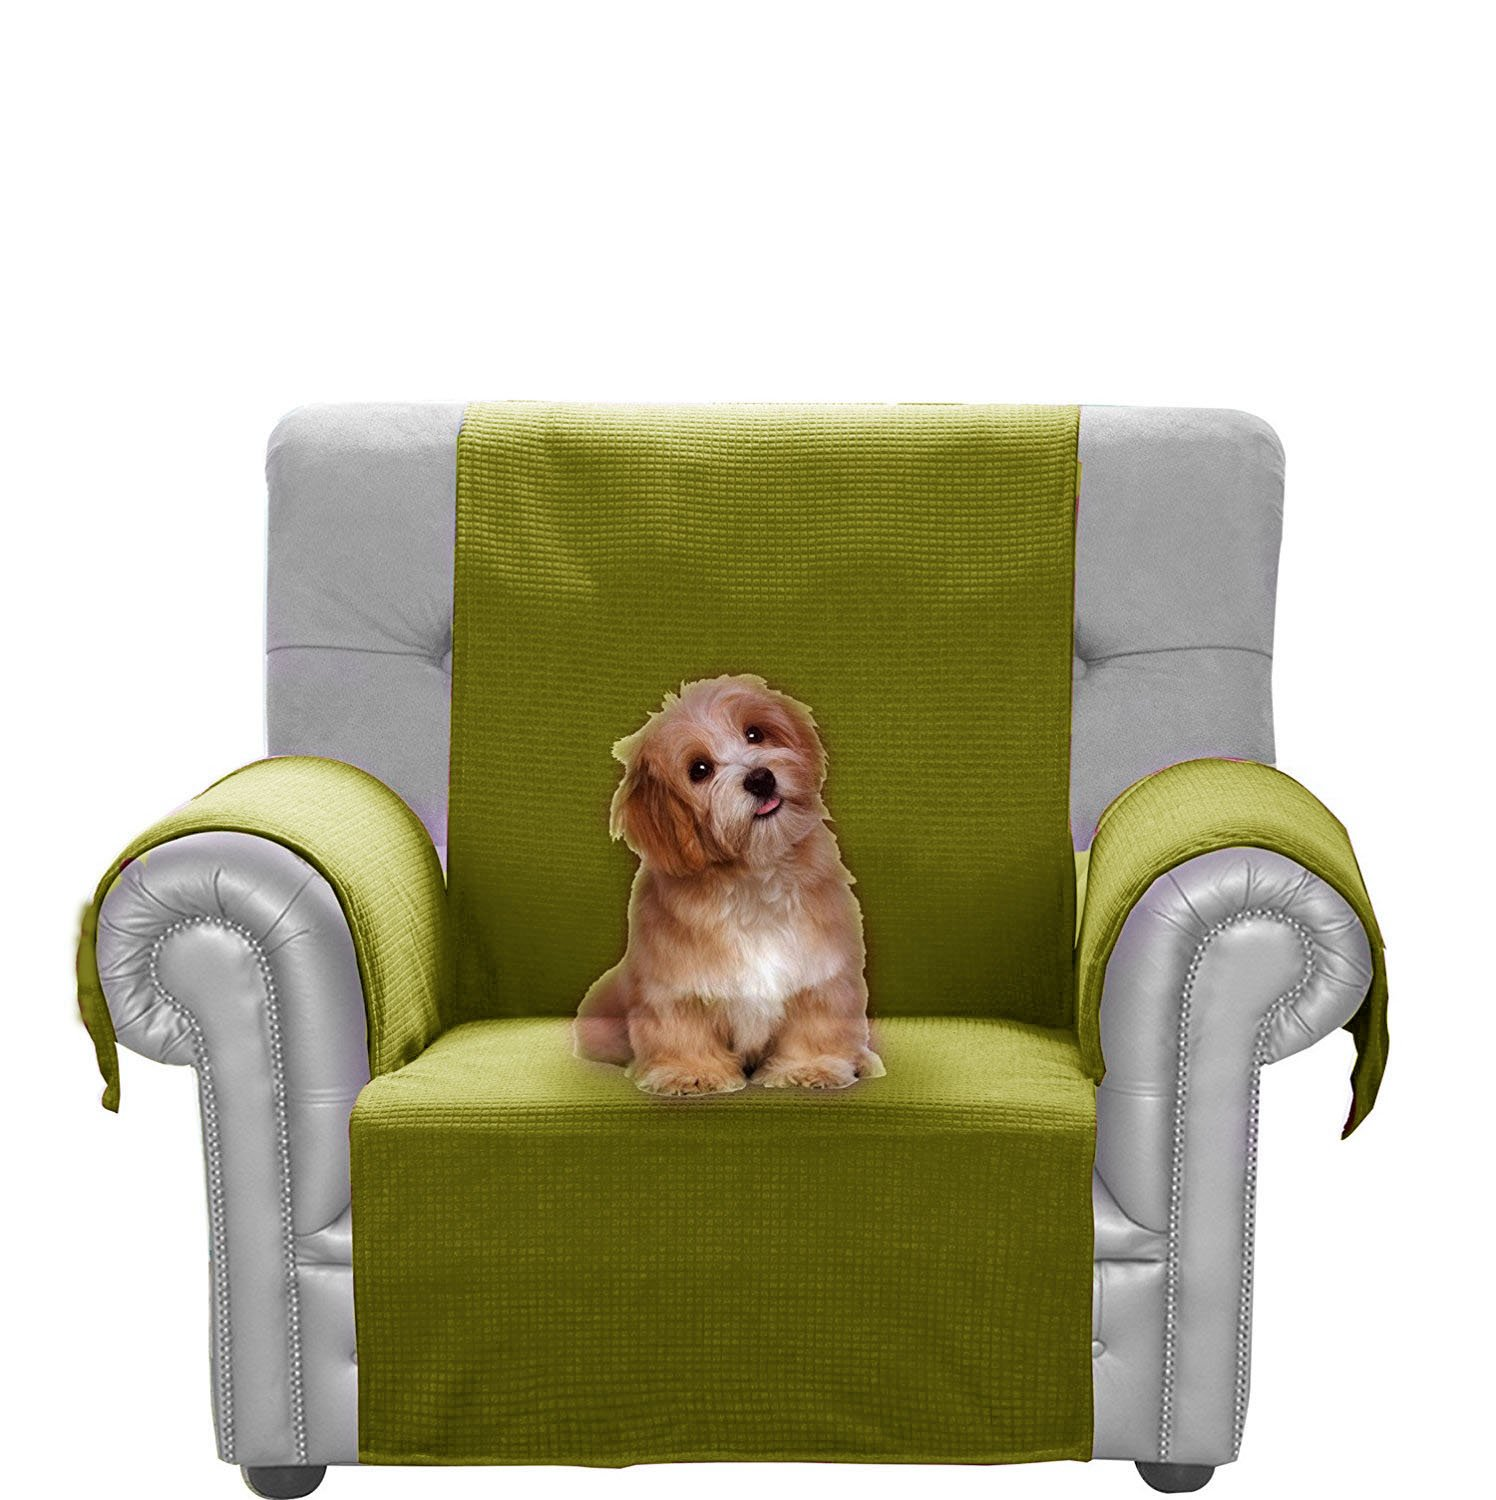 JIATER Improved Non-Slip Pet Dog Sofa Chair Slipcovers Living Room Couch Covers Furniture Protectors (Black, Chair) JIATER HOUSEHOLD